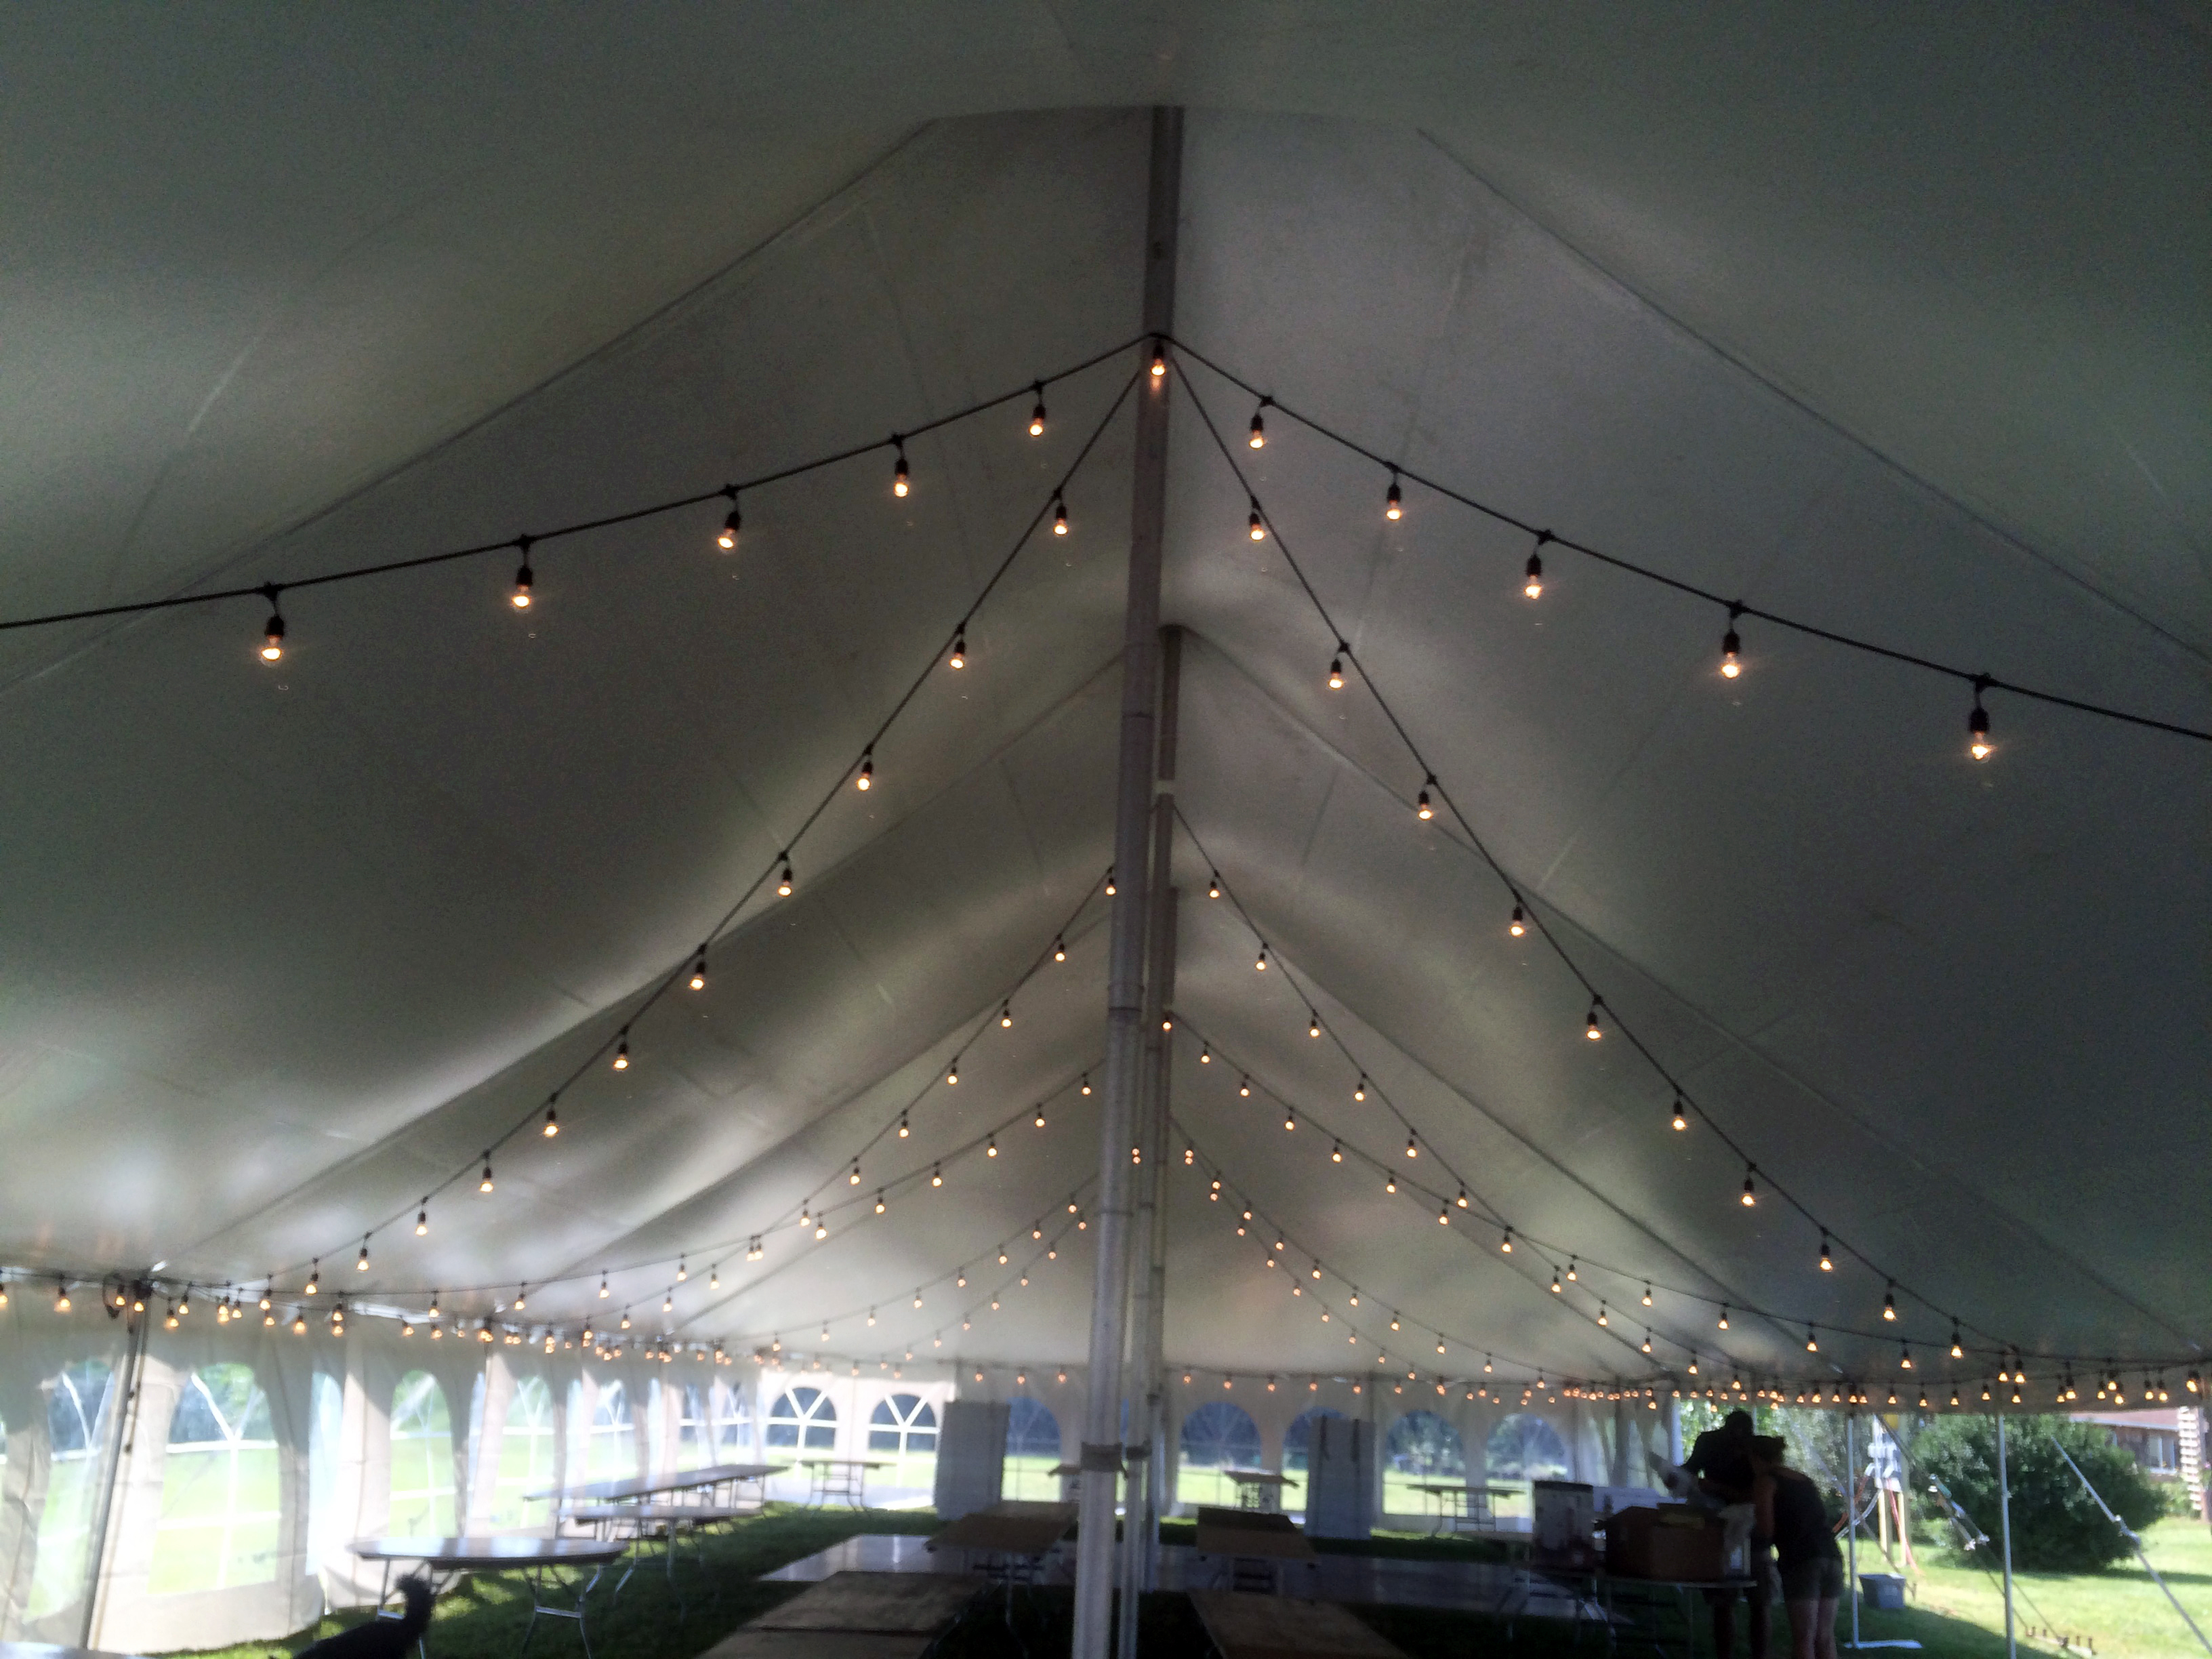 Wedding reception tent for 160 guests Dance flooring & lighting